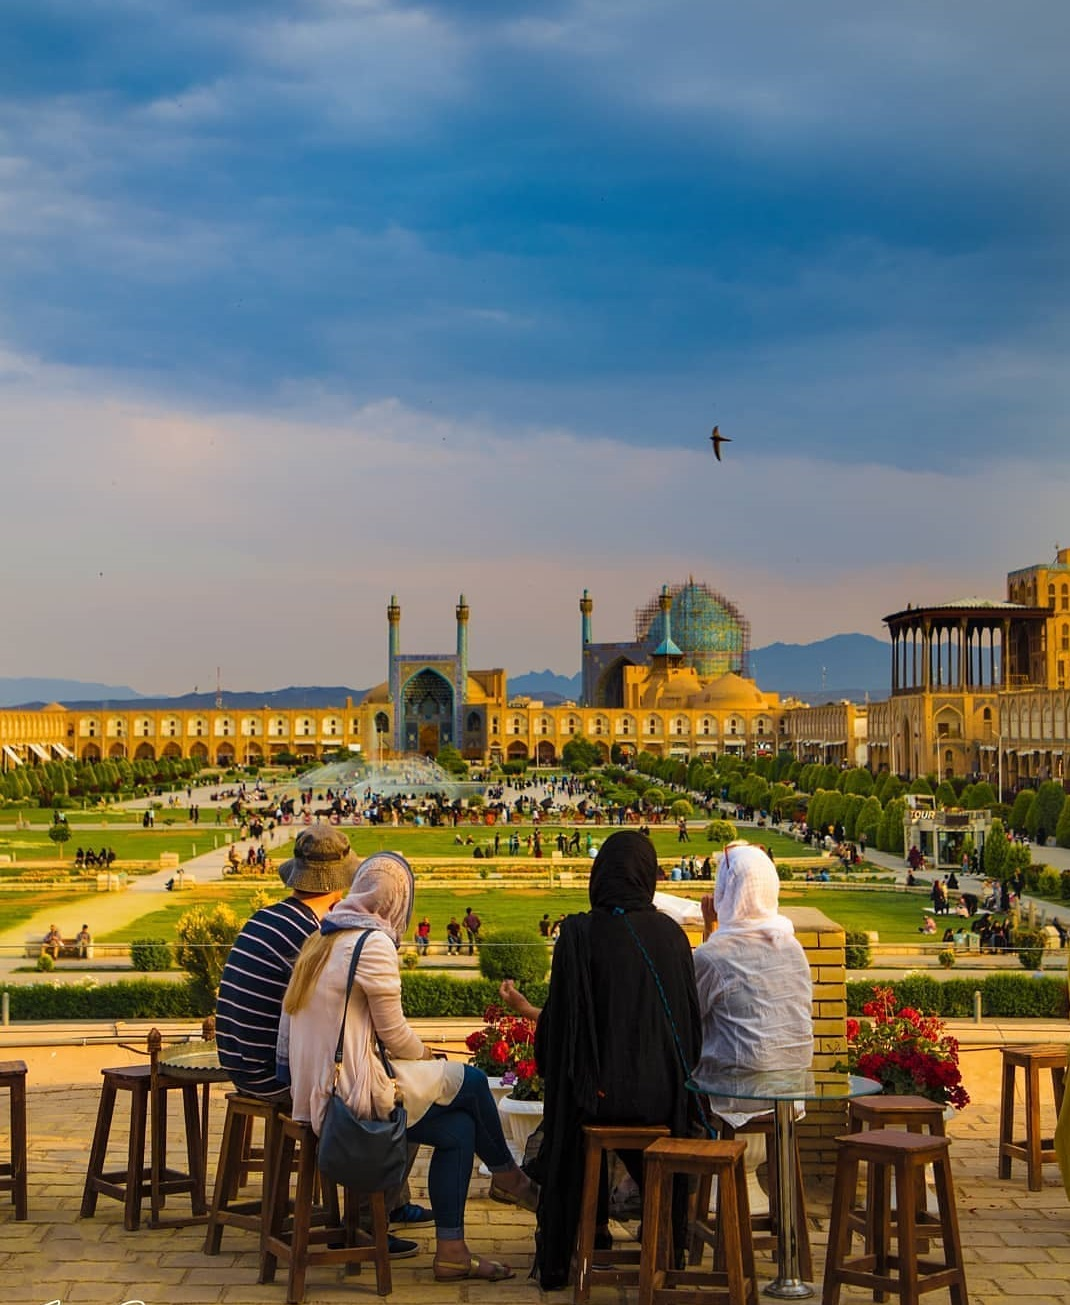 Day 4: Isfahan City Tour